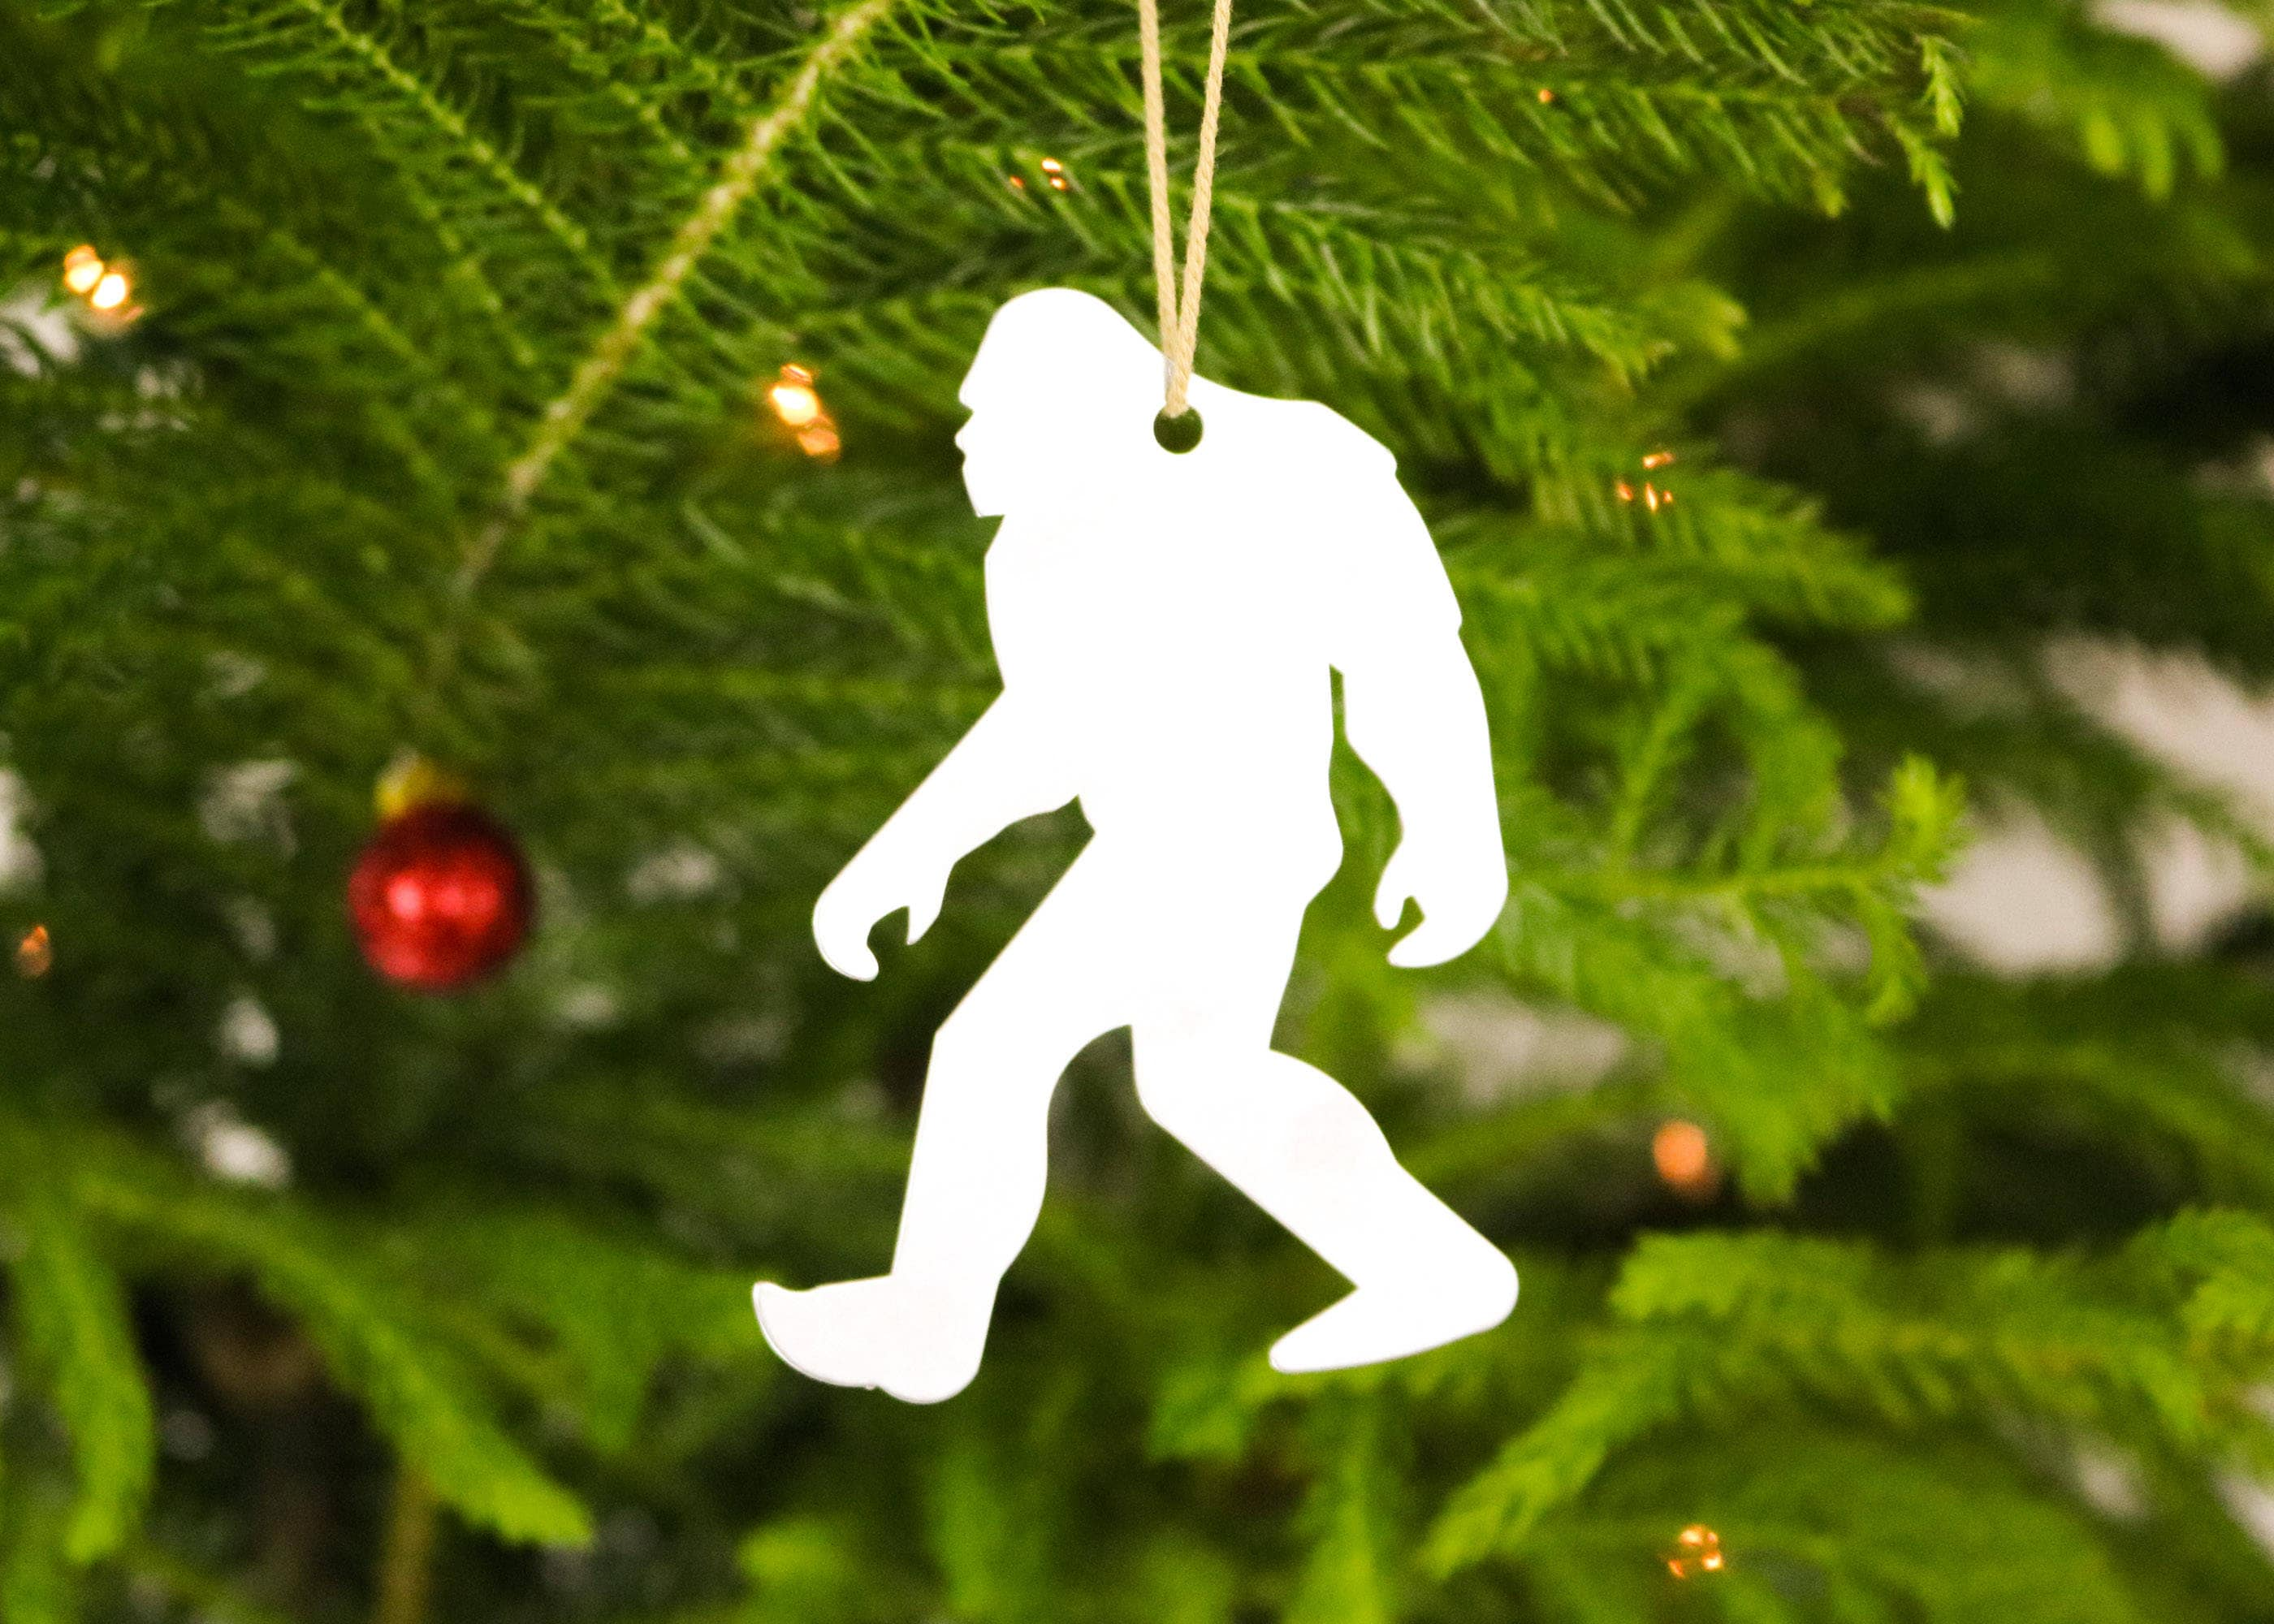 bigfoot yeti sasquatch metal ornament custom gift for her him personalized stamping engraving wedding souvenir fall decor christmas holiday - Bigfoot Christmas Ornament